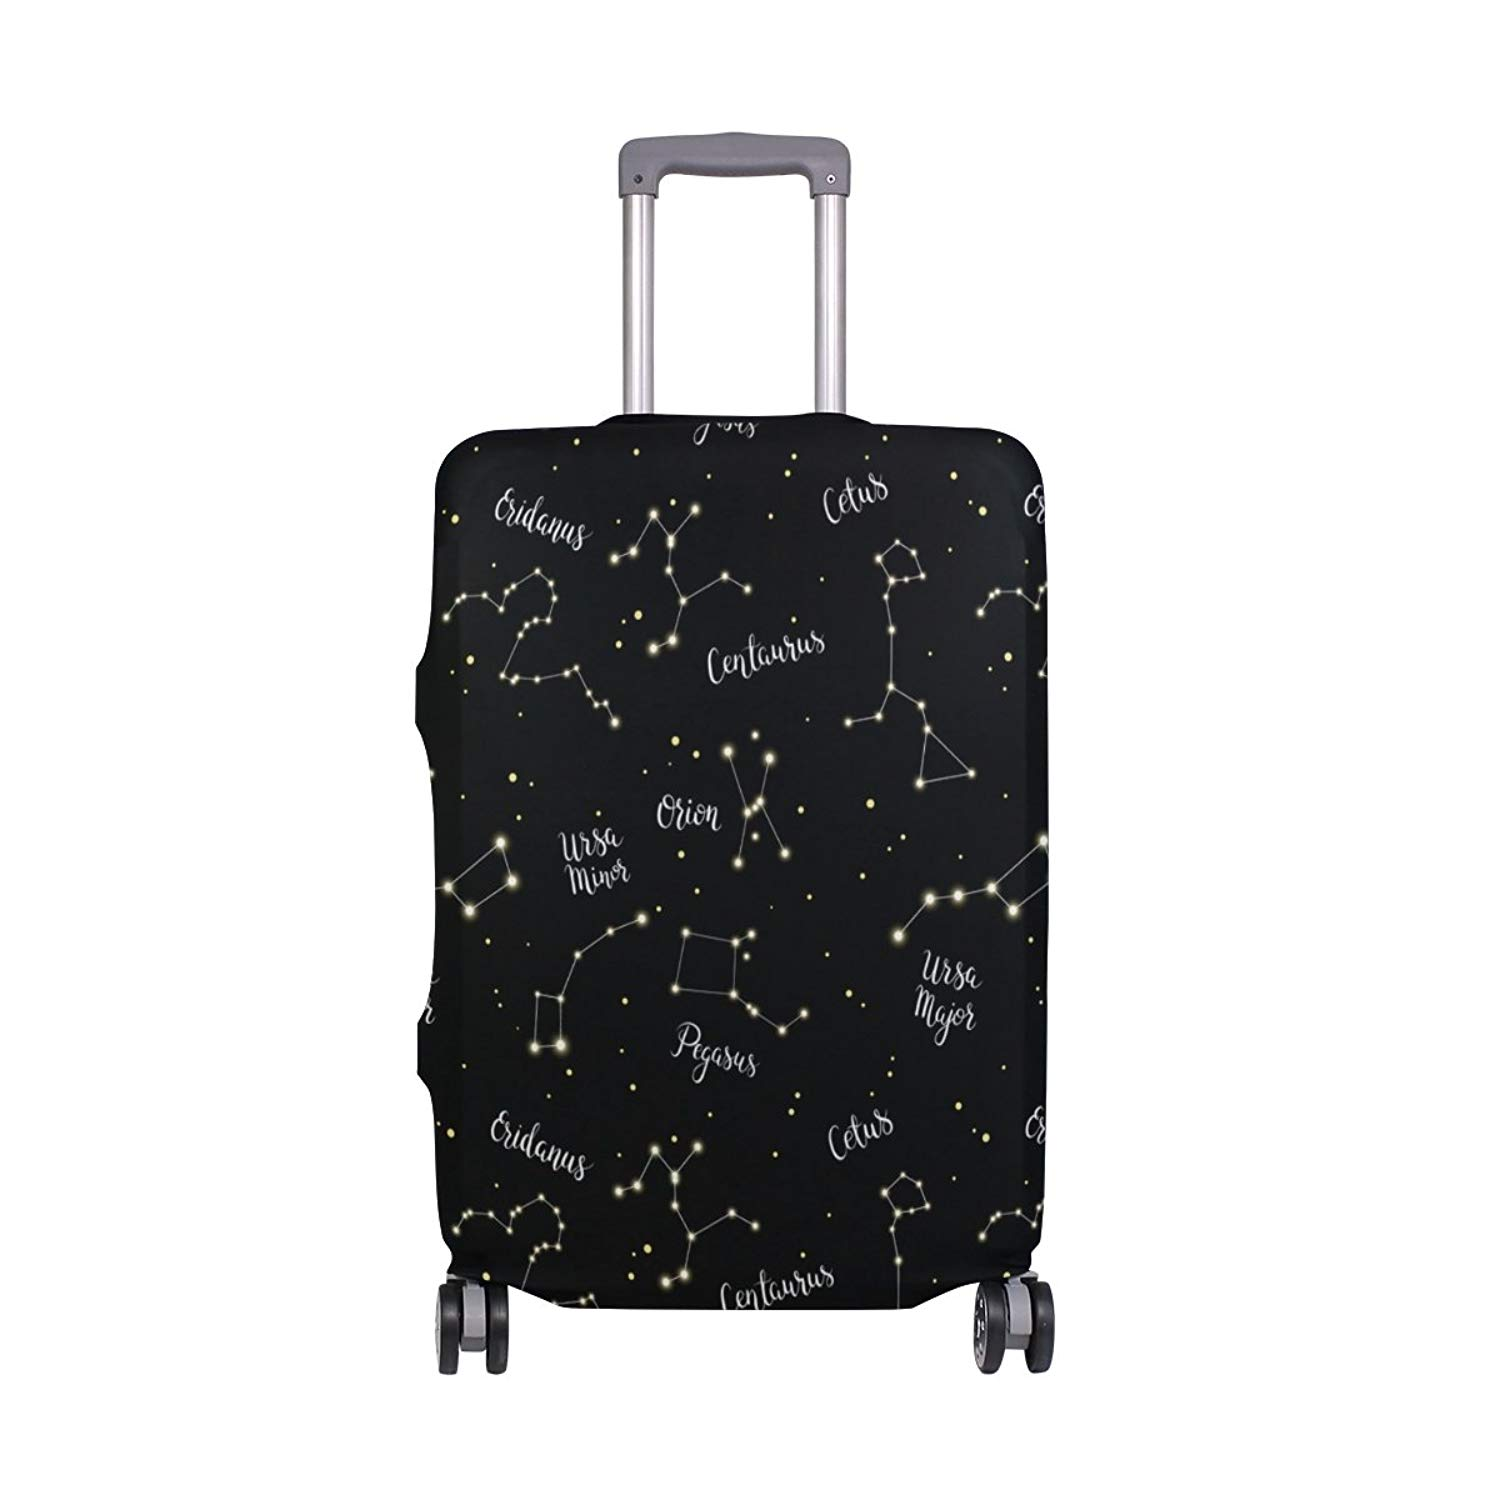 Cute 3D Hand Drawn Flowers Animals Pattern Luggage Protector Travel Luggage Cover Trolley Case Protective Cover Fits 18-32 Inch